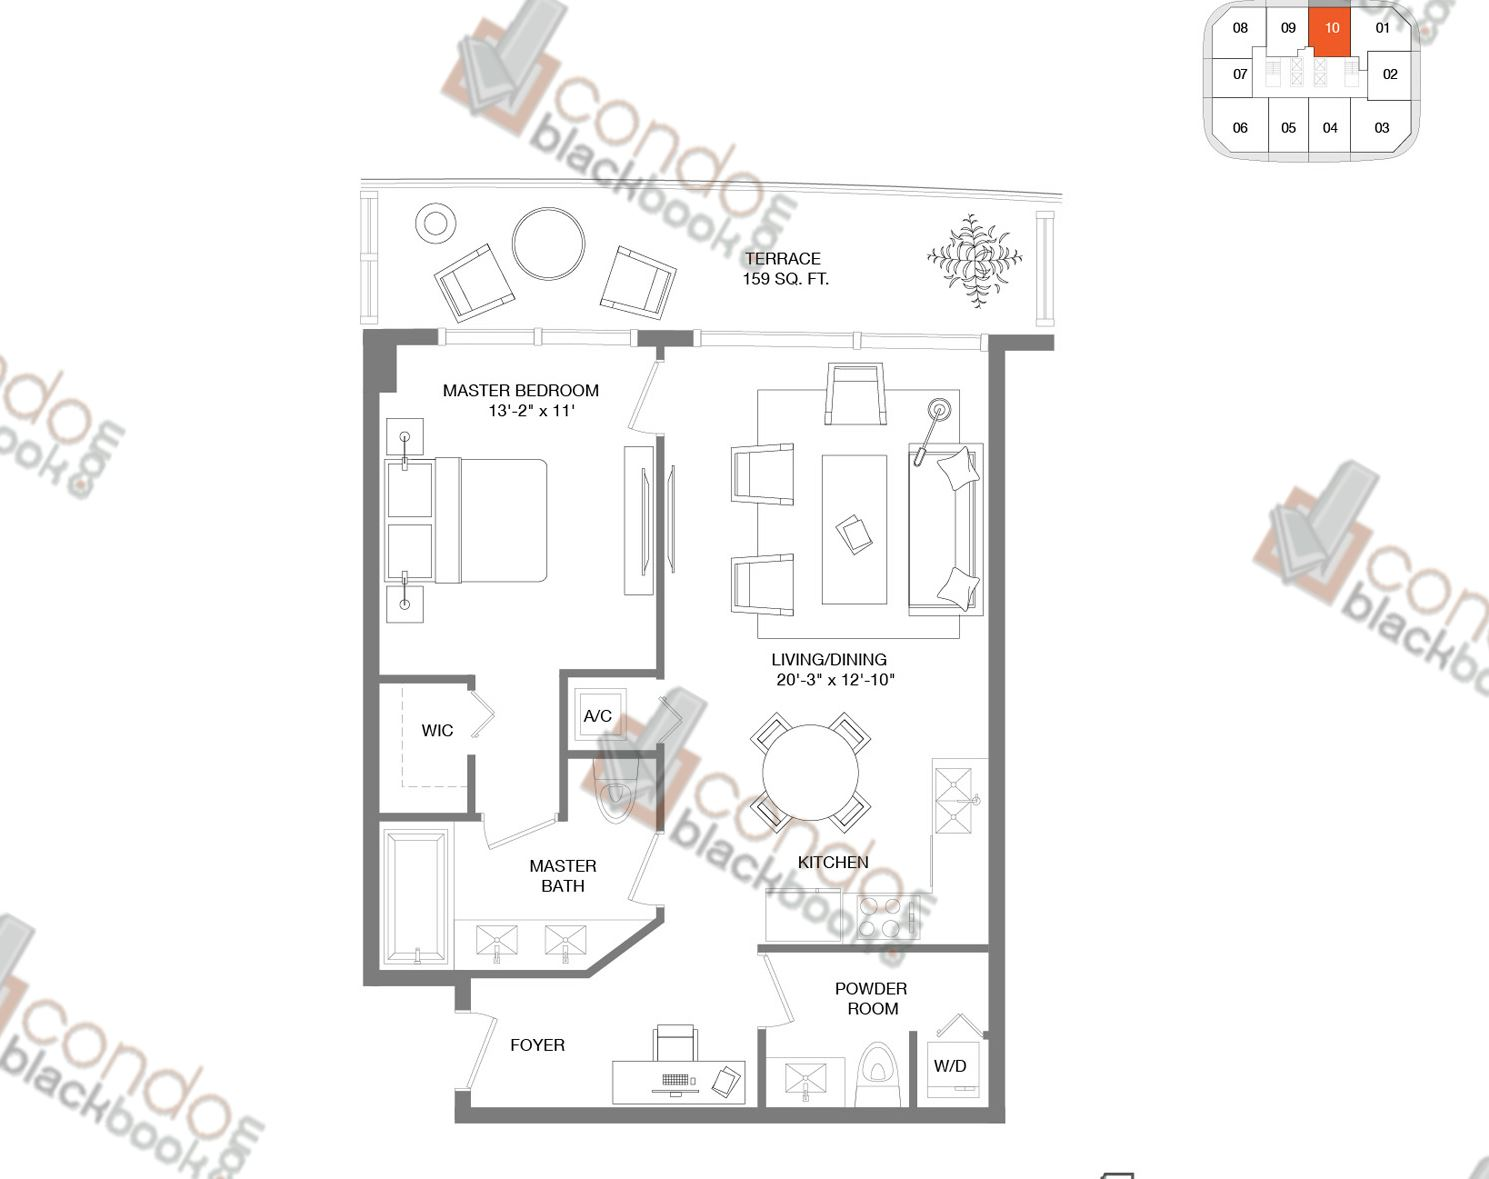 Floor plan for Brickell Heights East Tower Brickell Miami, model Residence 10, line 10, 1/1.5 bedrooms, 843 sq ft